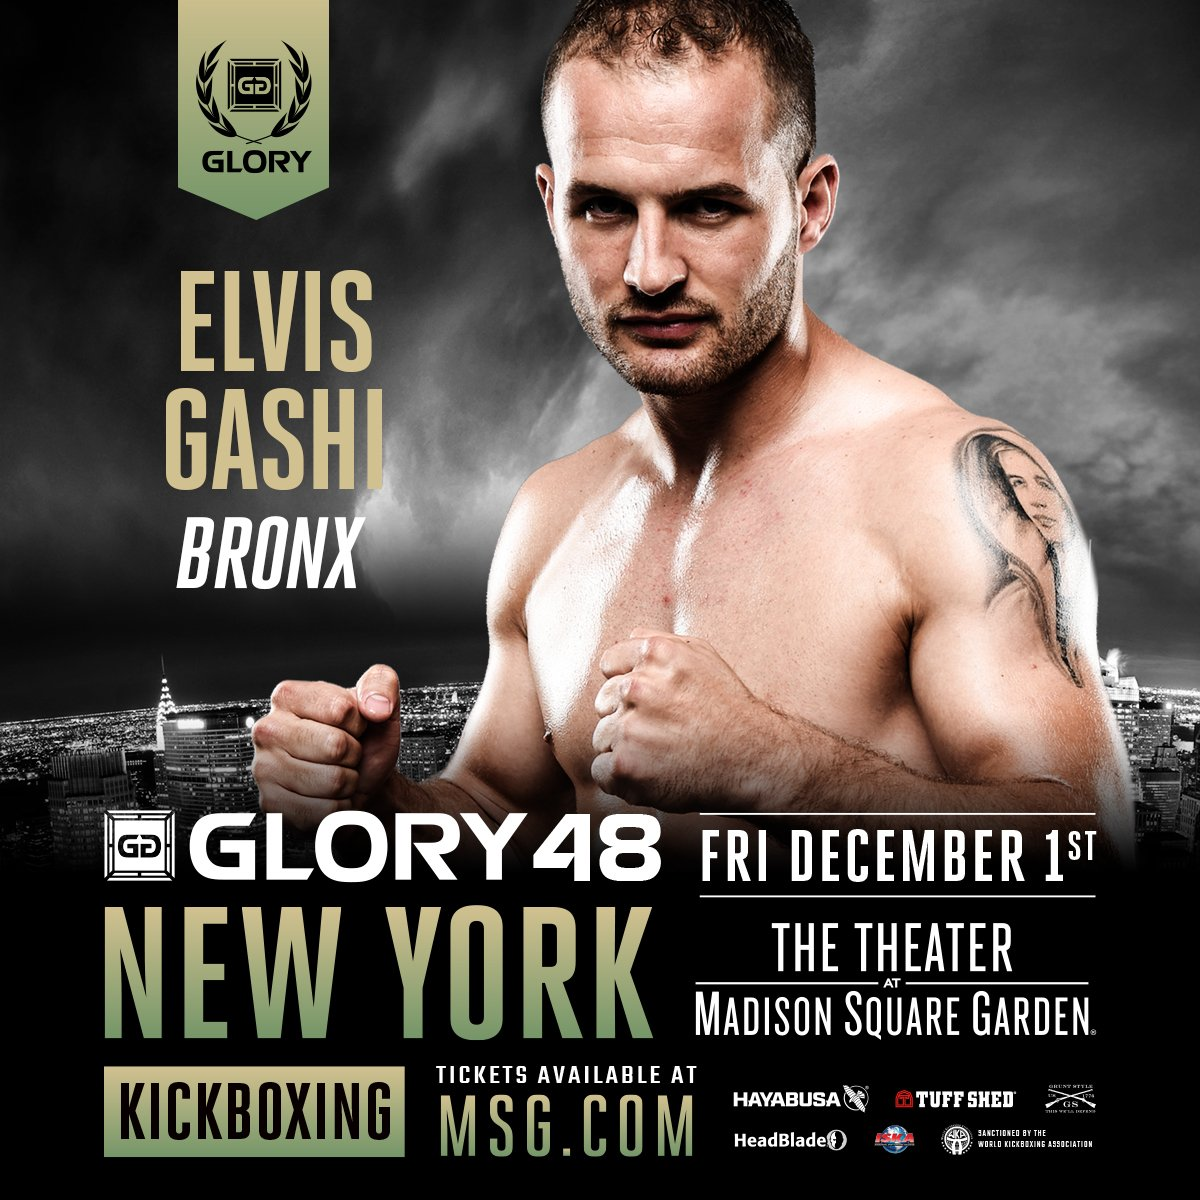 GLORY Kickboxing on Twitter: